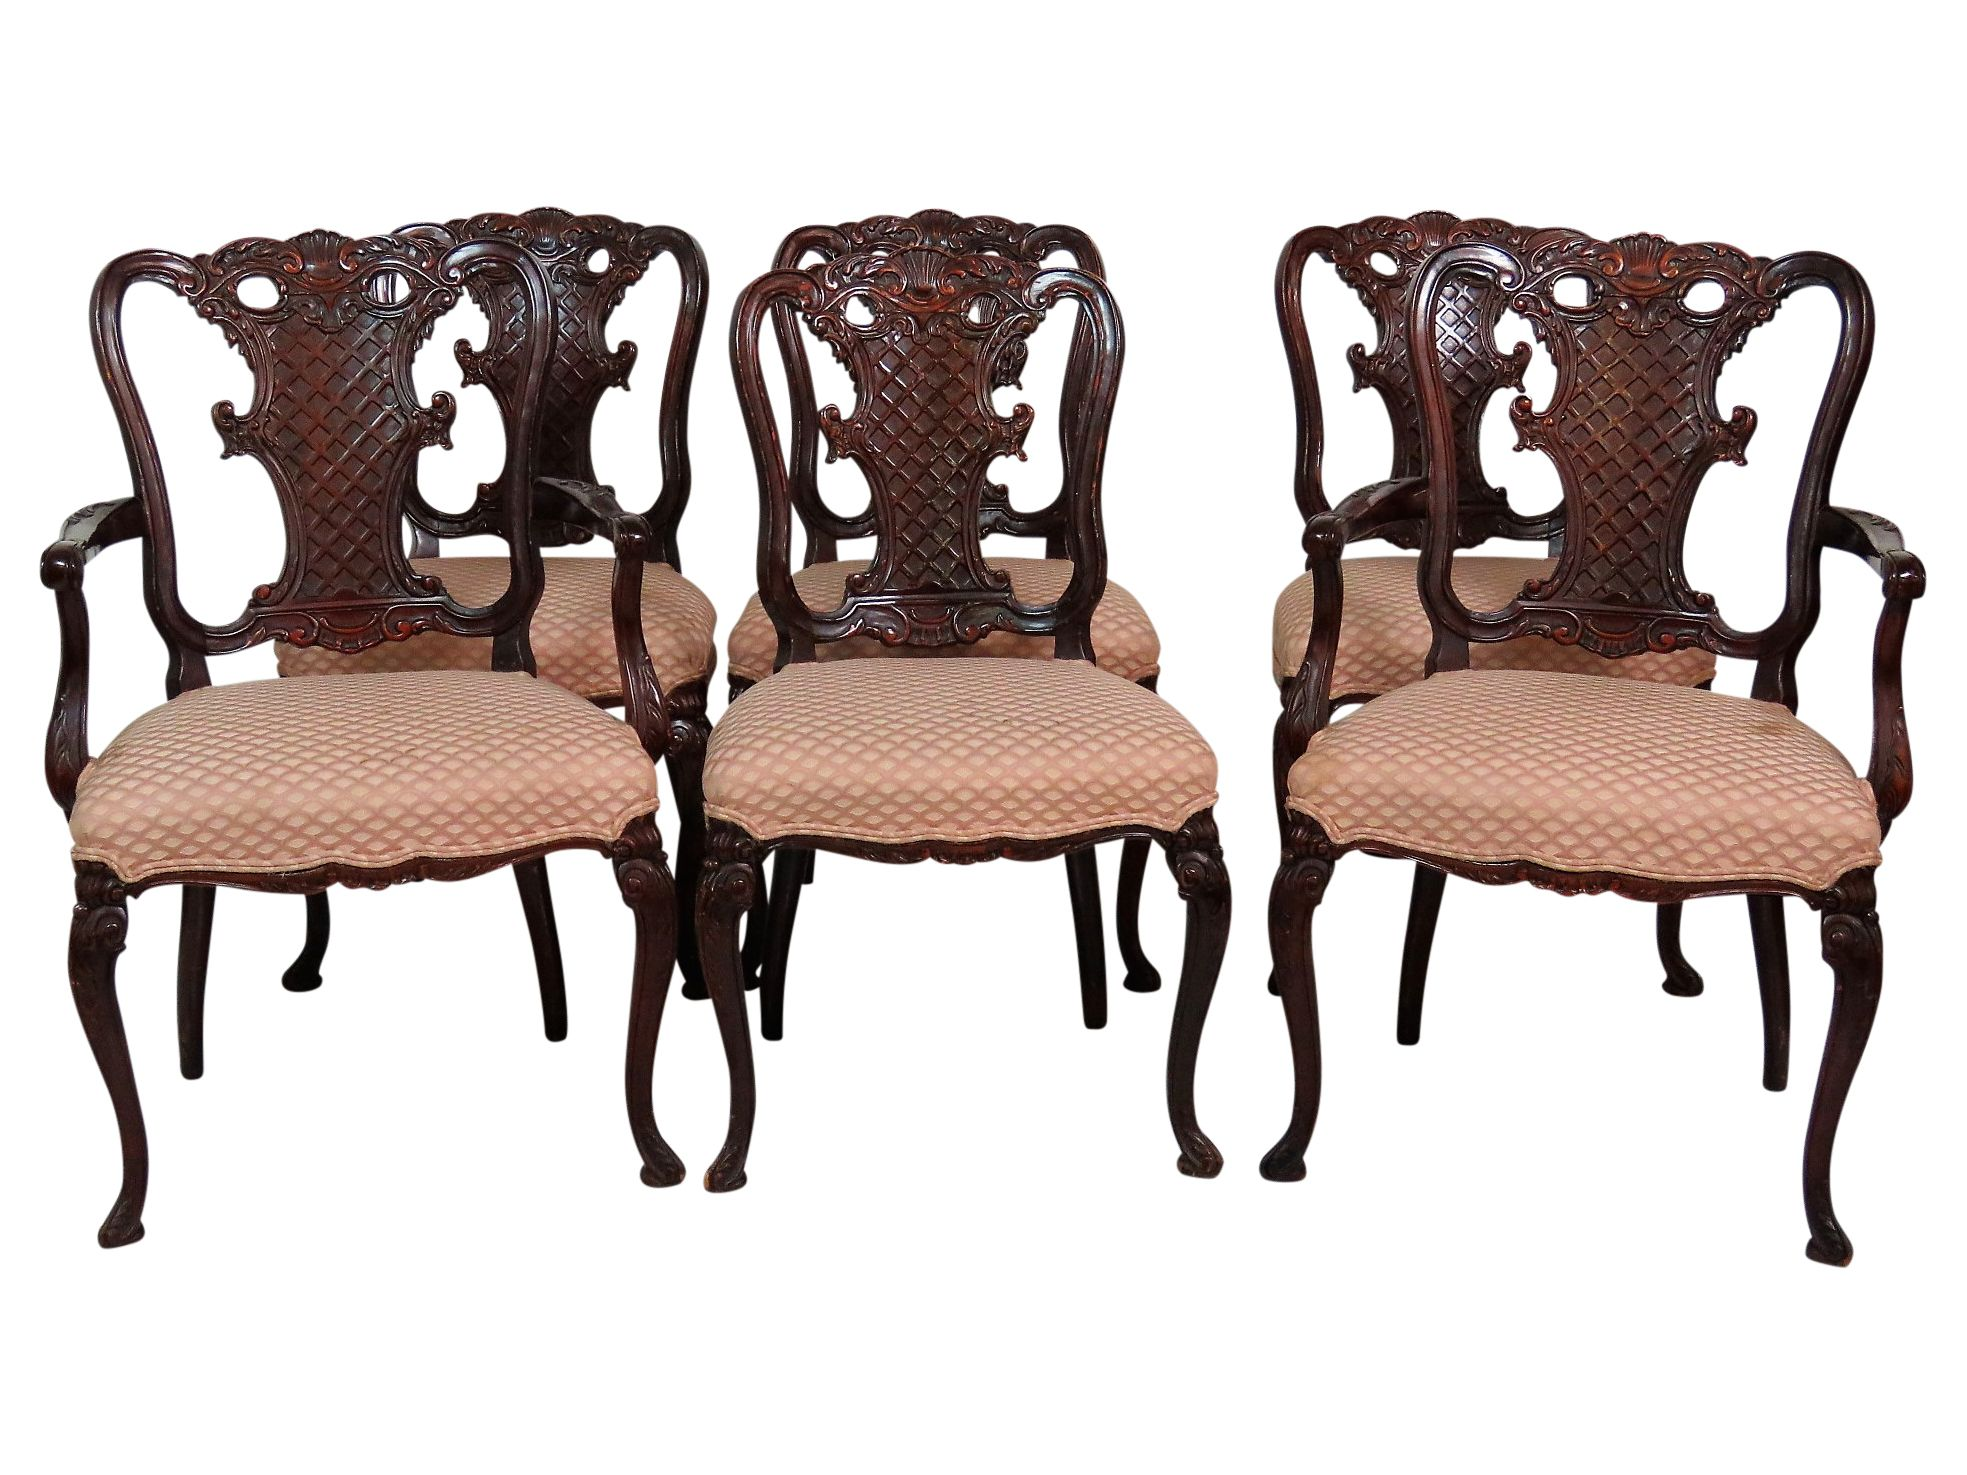 Explore Dining Chairs Frames And More